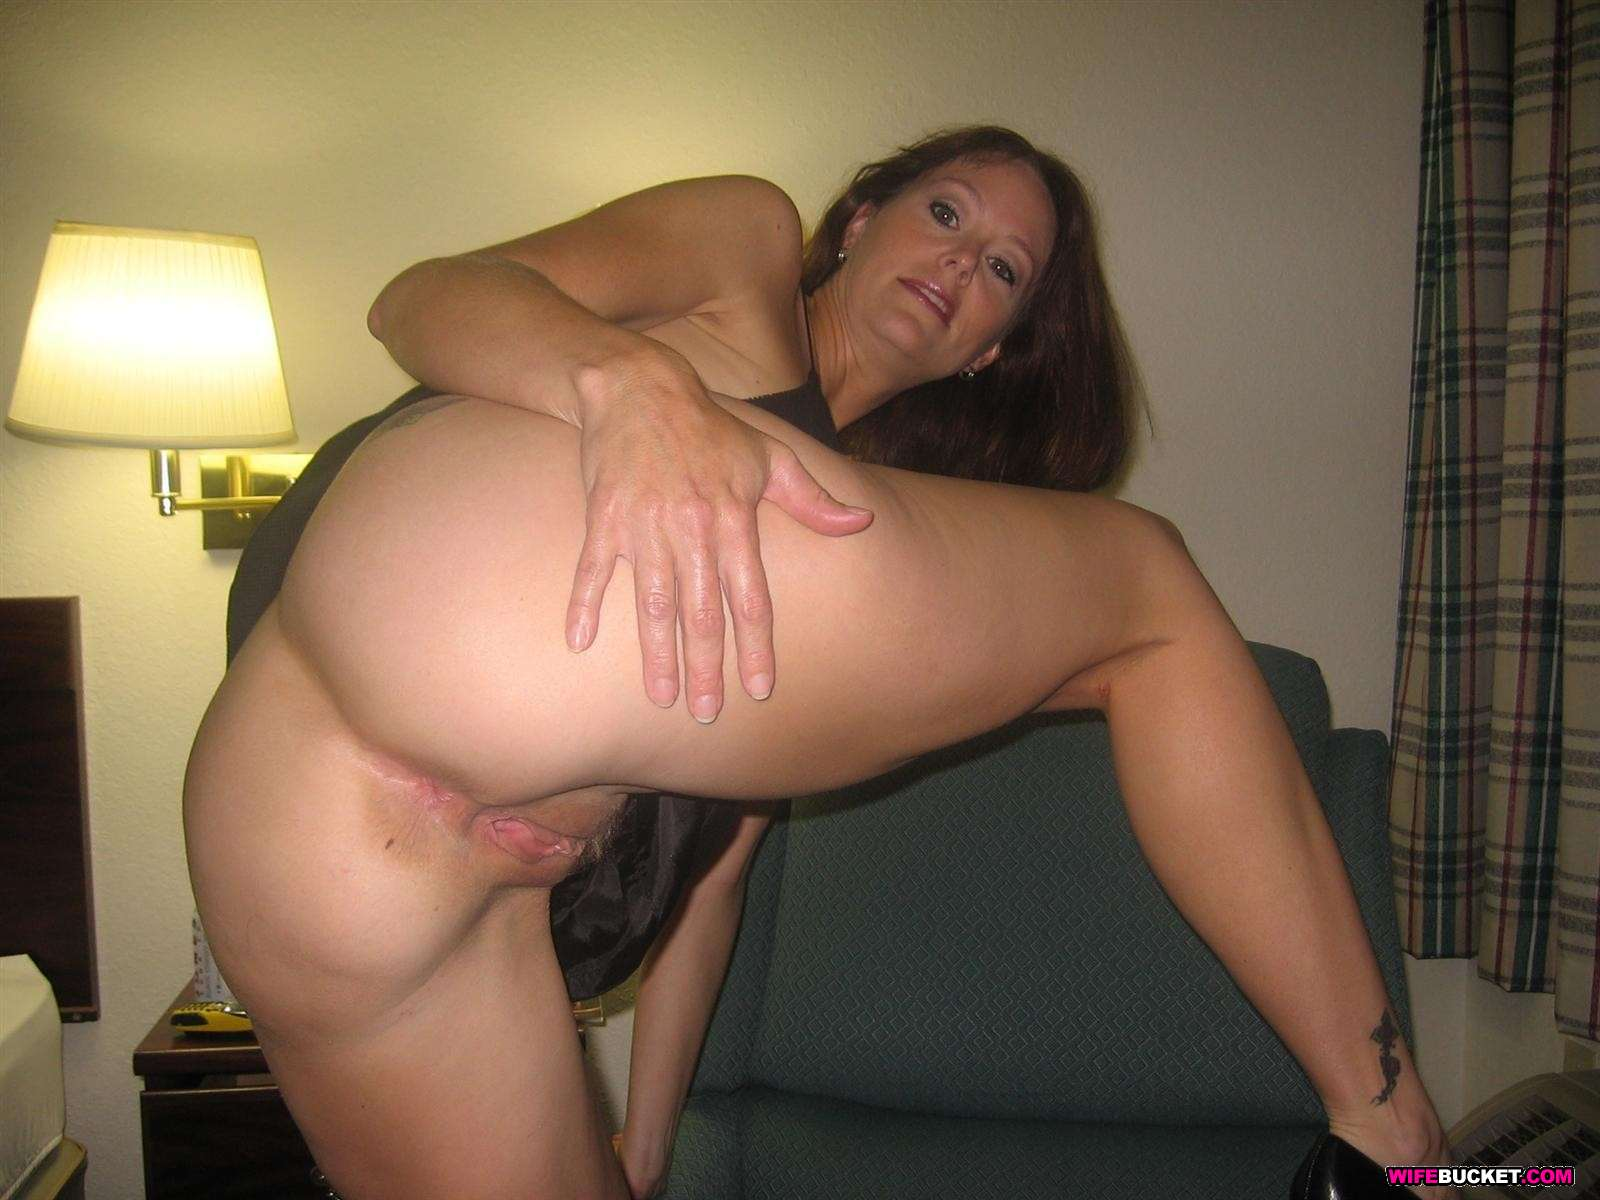 Free milf anal amature videos